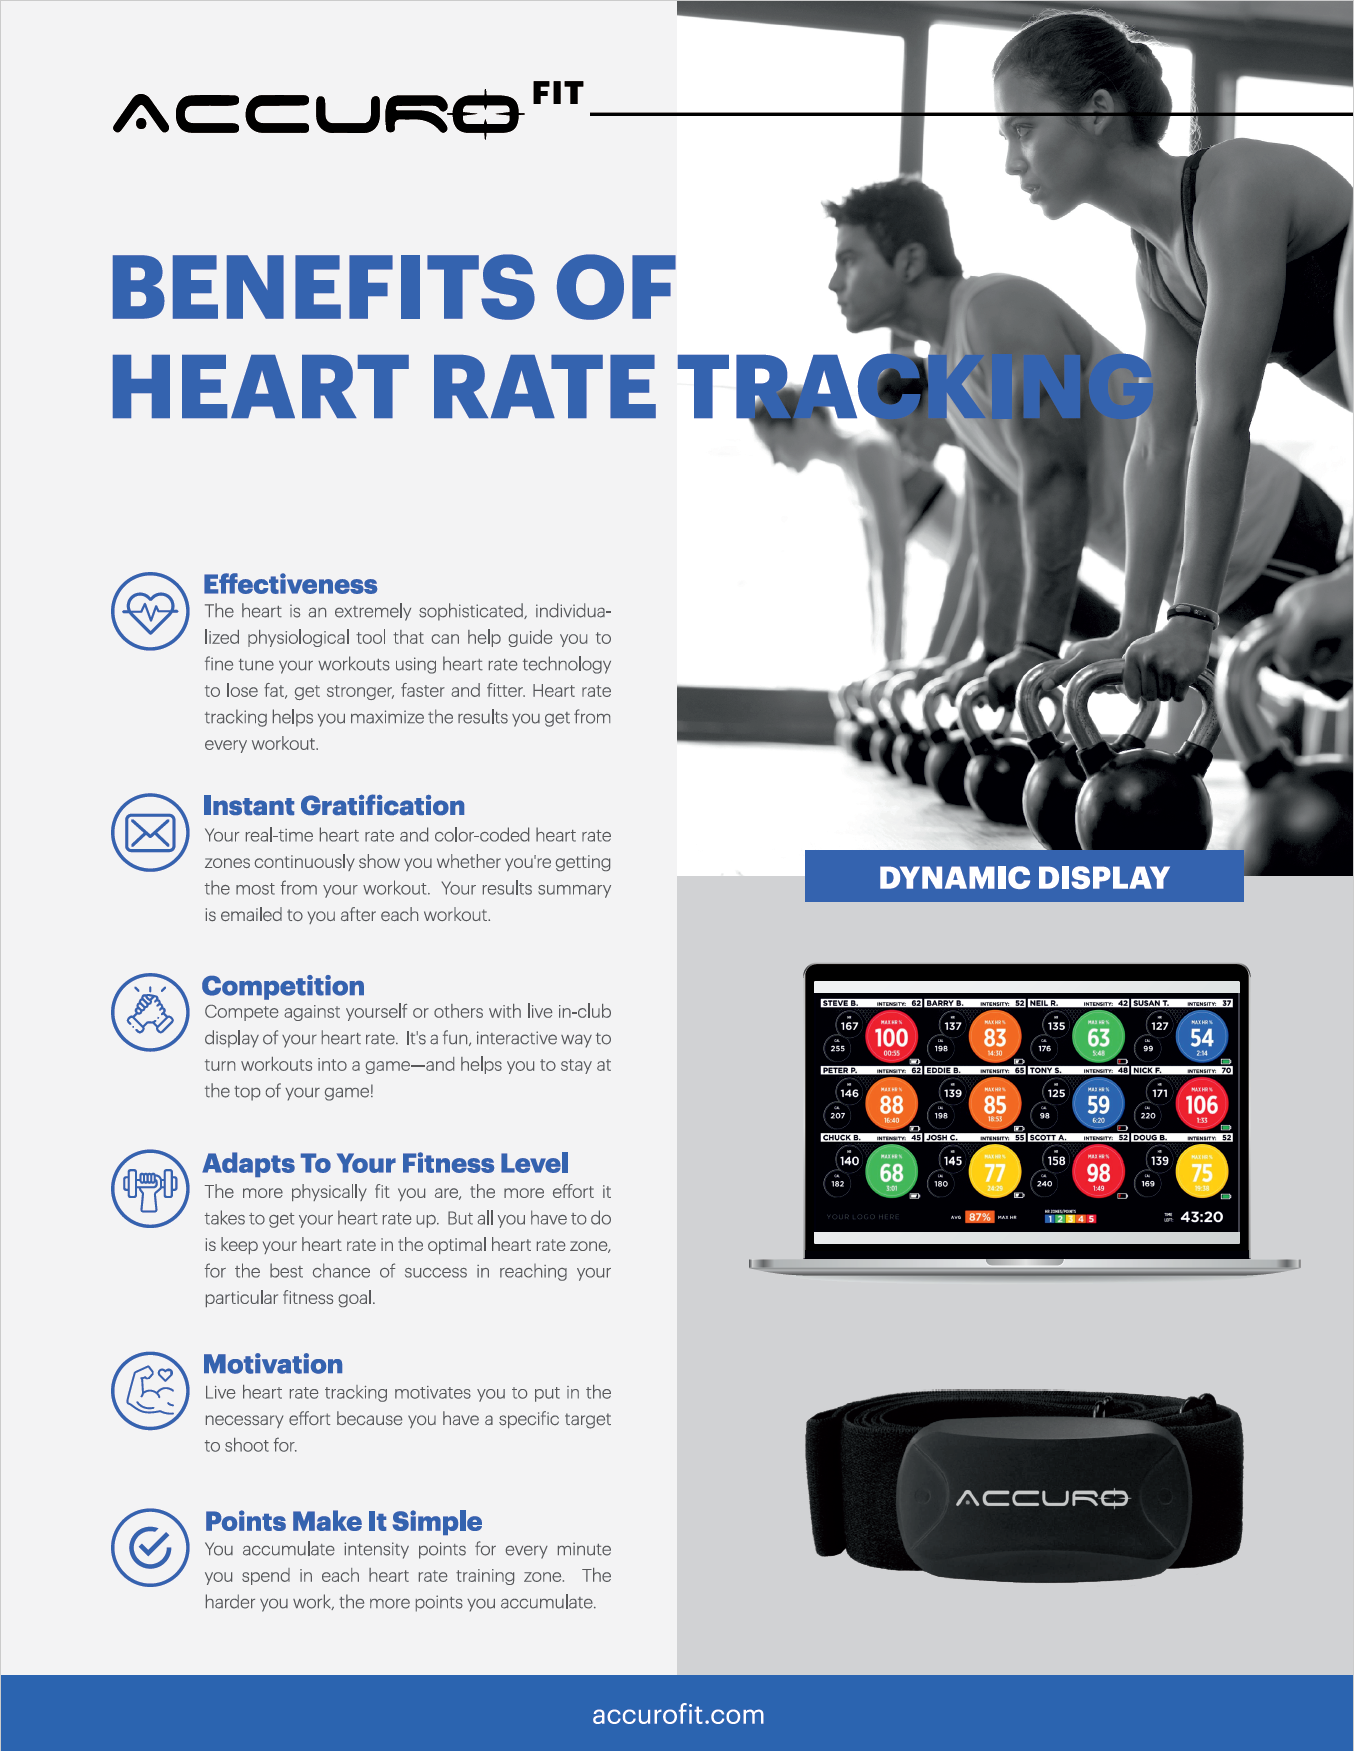 Benefits of Heart Rate Tracking